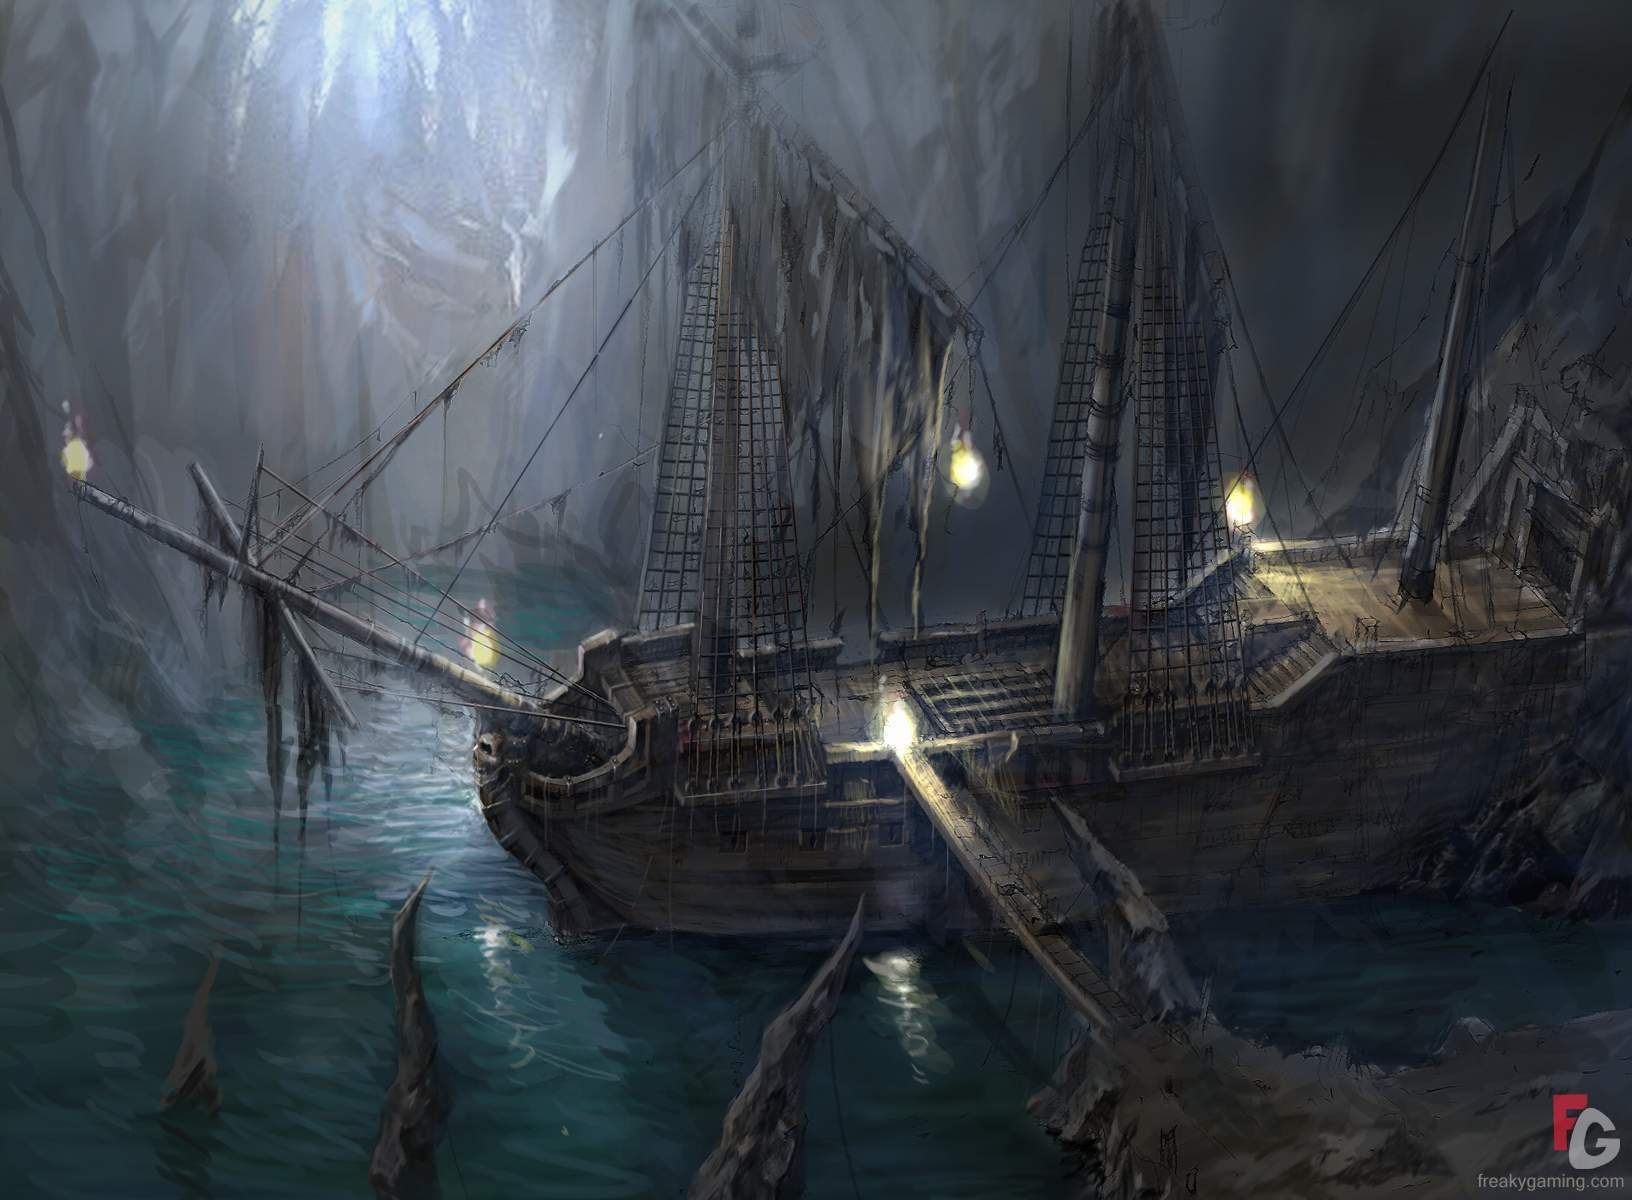 Lineage 2 Wallpaper Hd Ship Art Lineage 2 Pirate Ship In Cave Art Ships